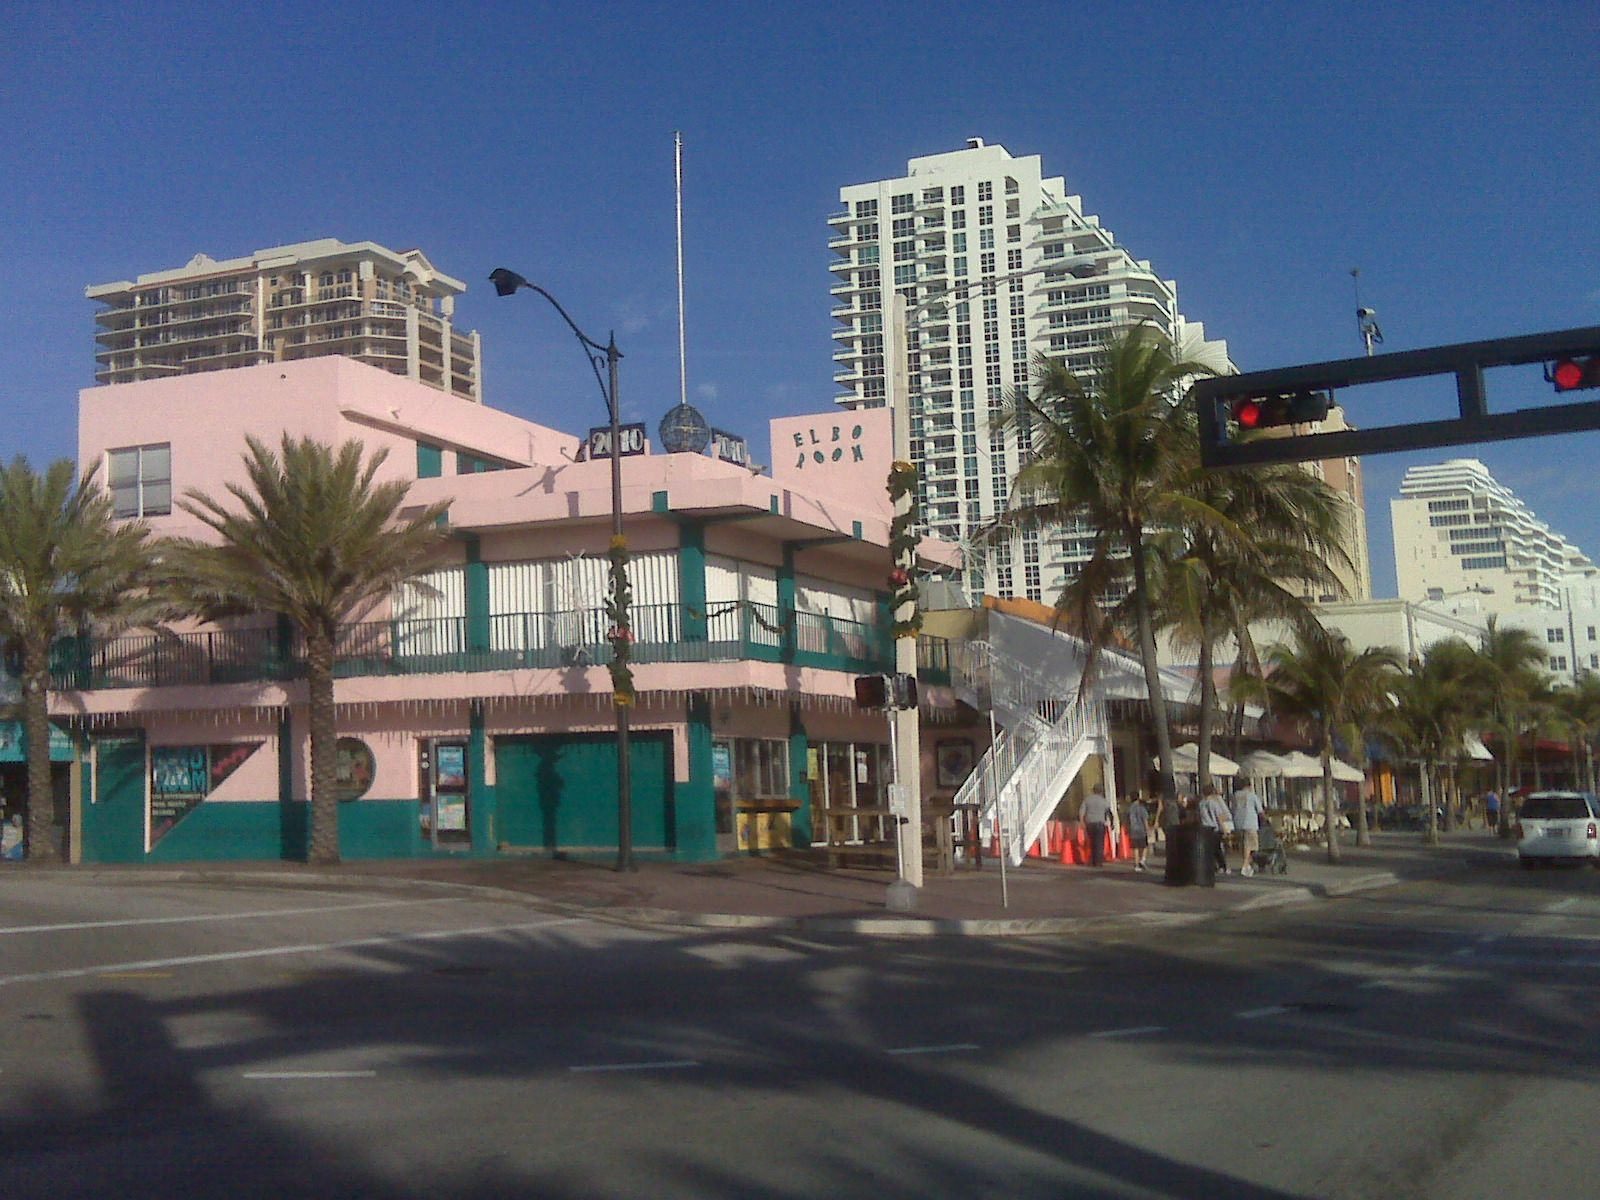 The very famous Elbo Room   Fort lauderdale, Florida, Lauderdale